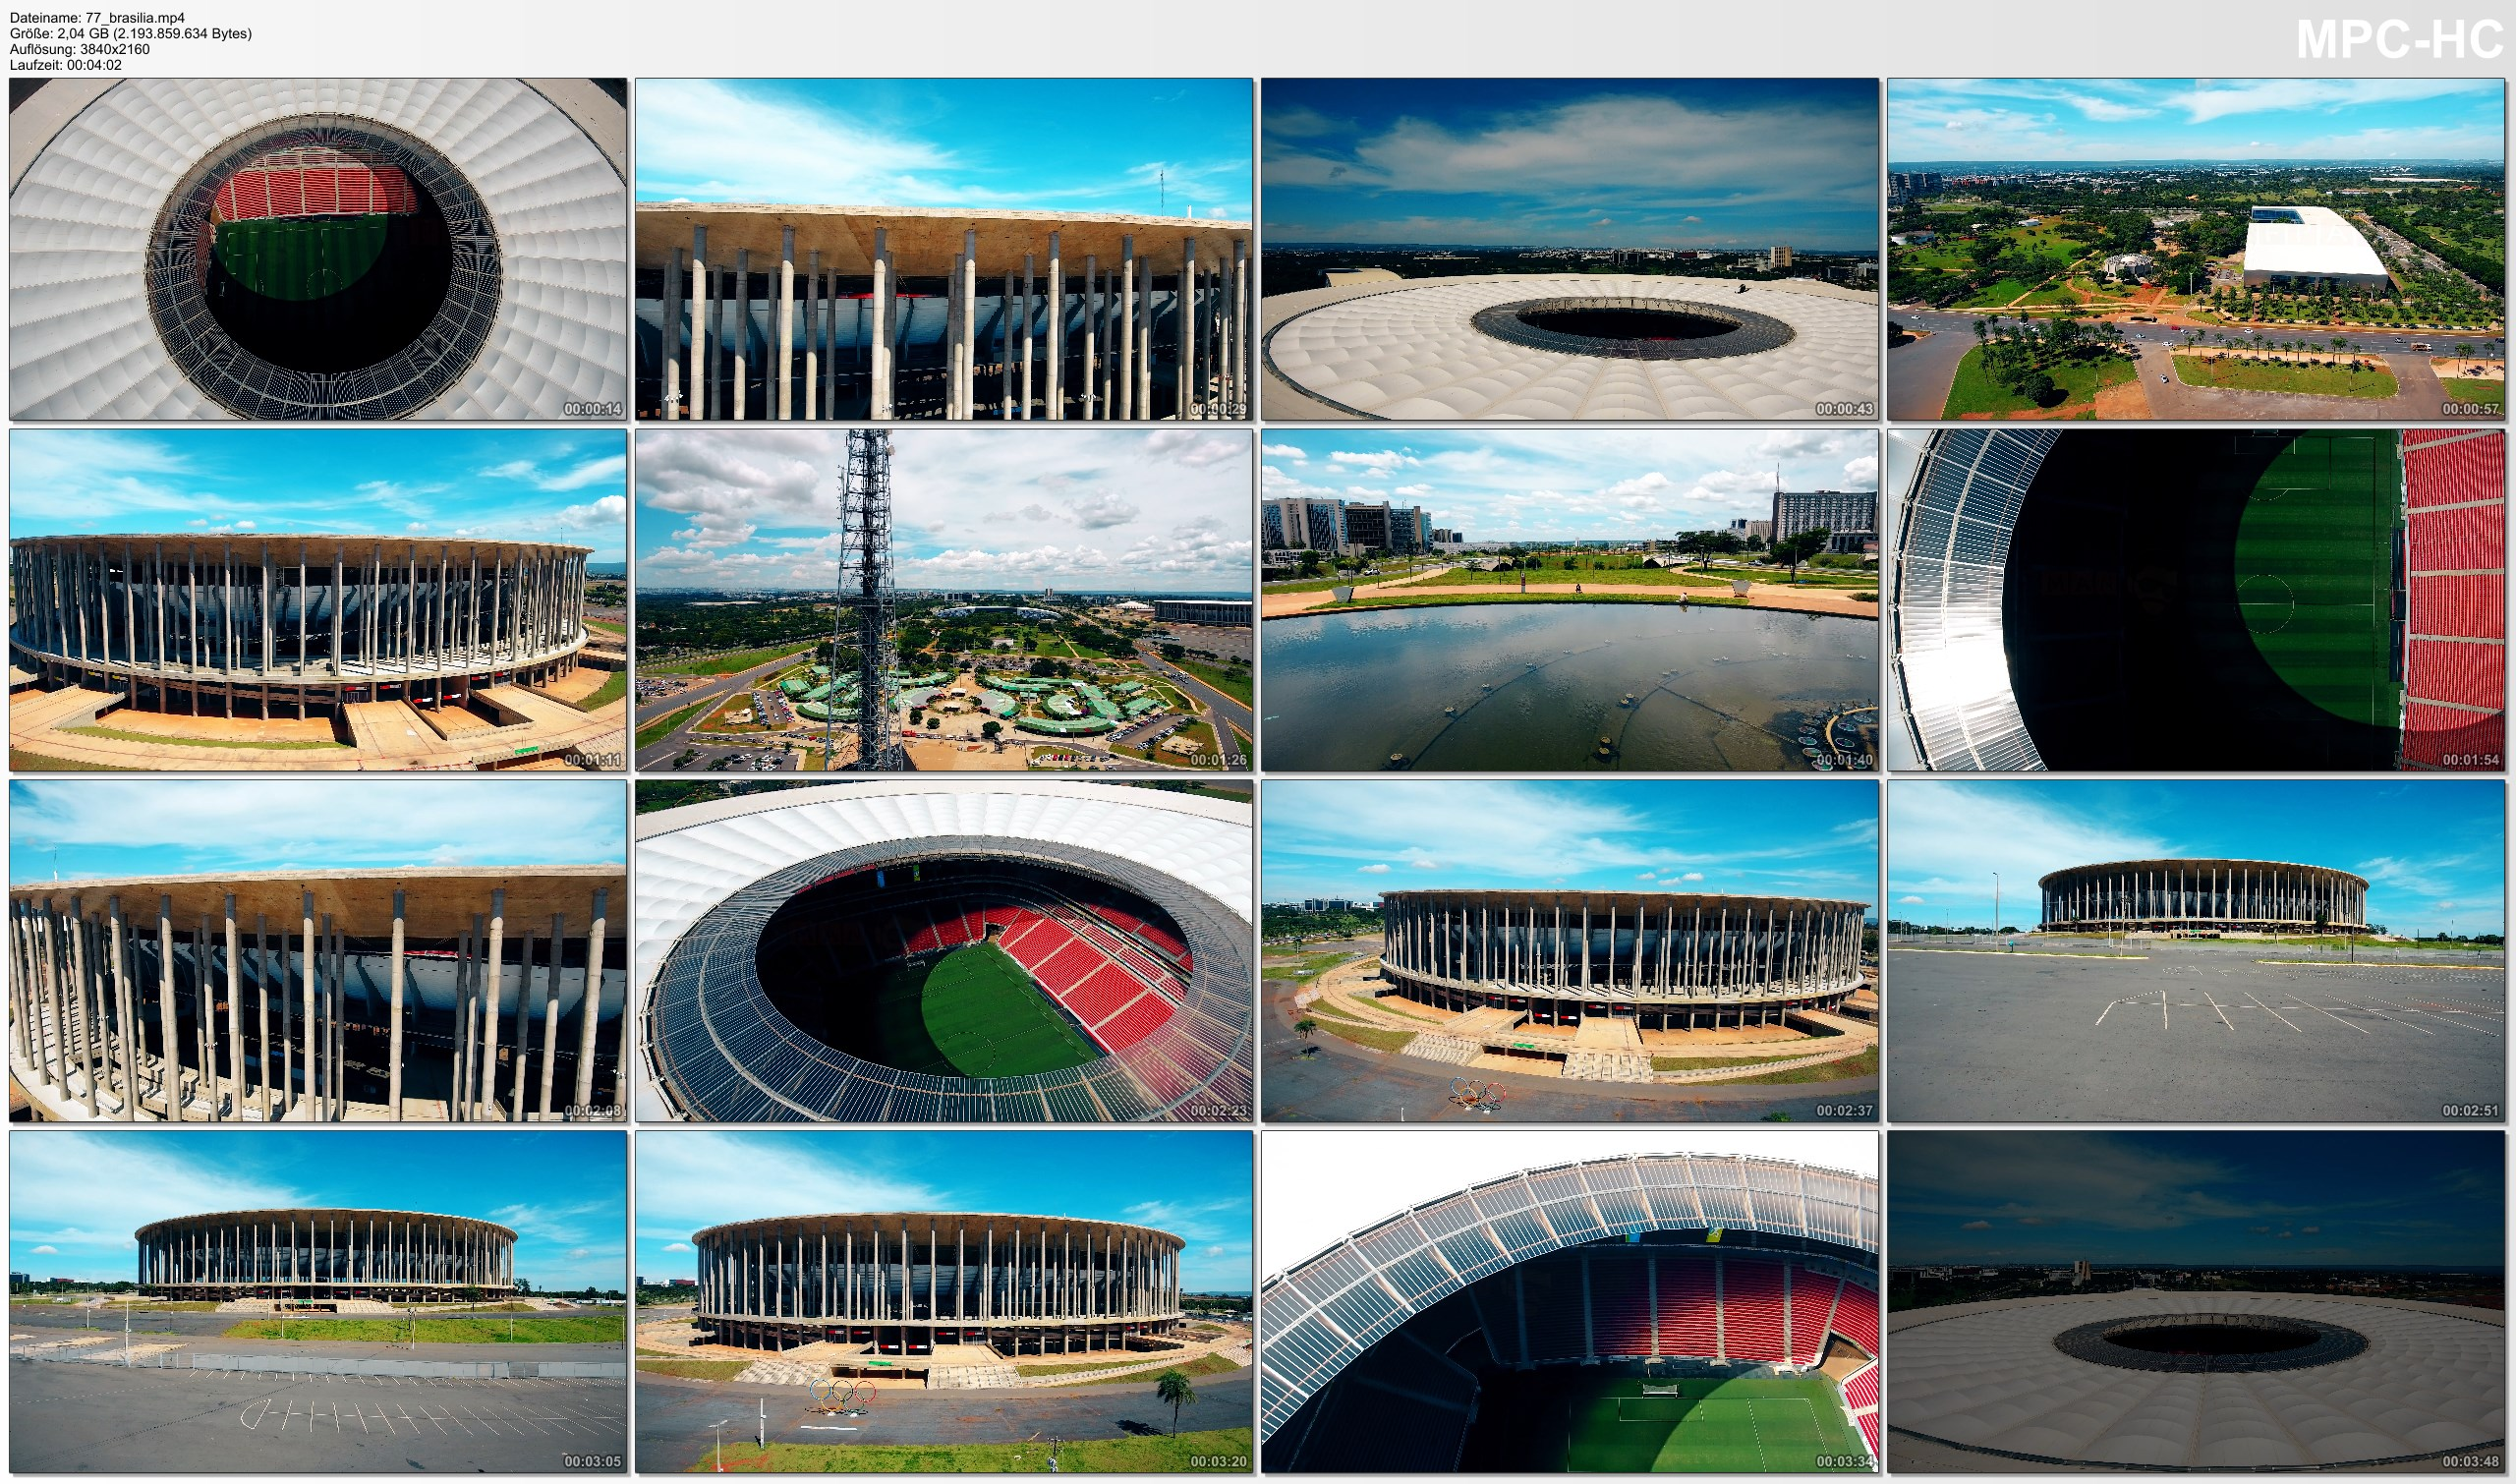 Drone Pictures from Video 【4K】Drone Footage | ESTADIO NACIONAL DE BRASILIA MANE GARRINCHA ..:: Spectacular Arenas 2019